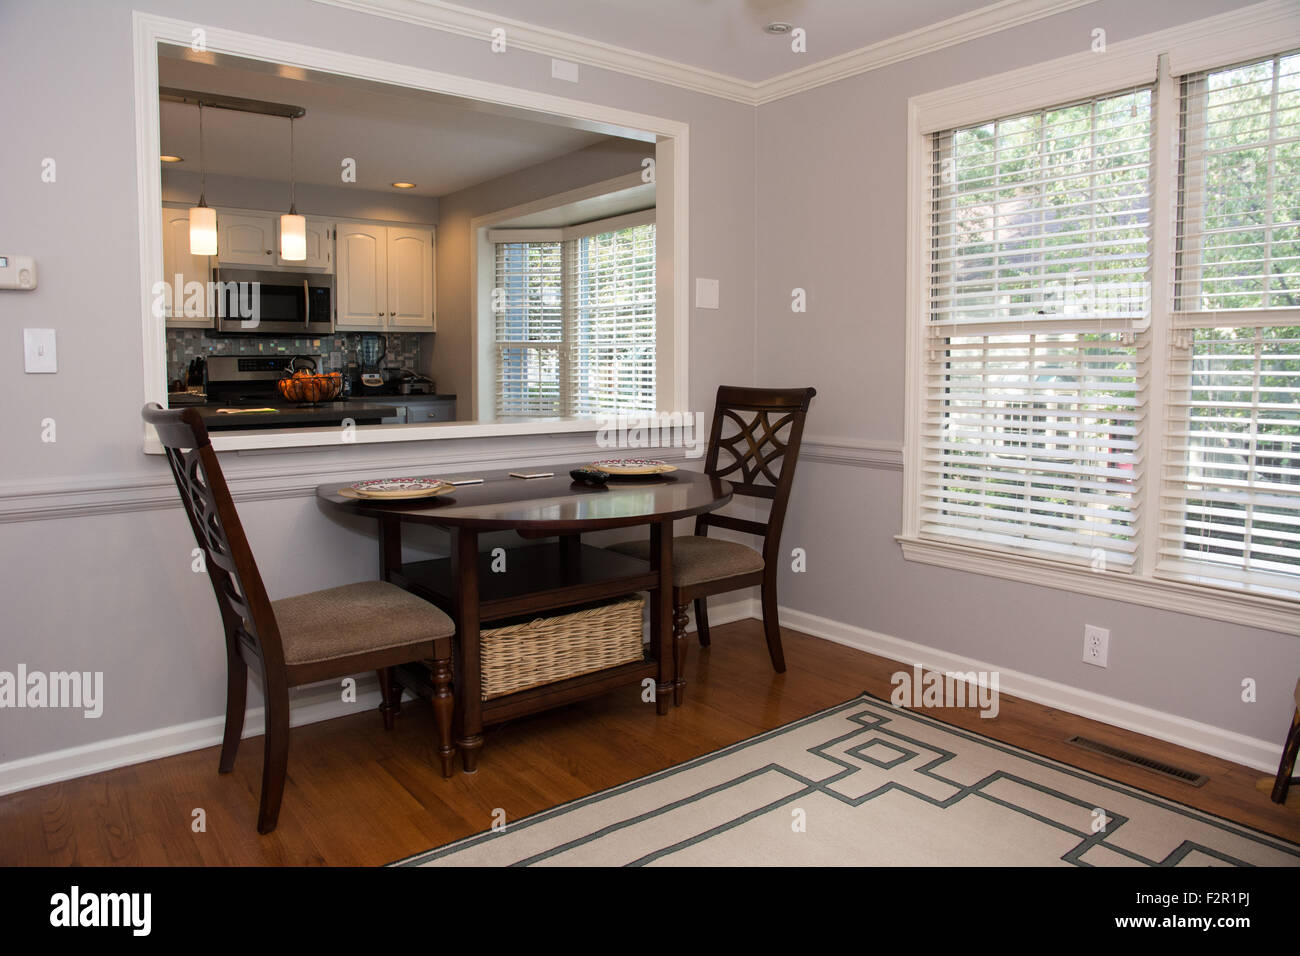 A small dining table is an inviting setting in a warm, bright breakfast room. - Stock Image